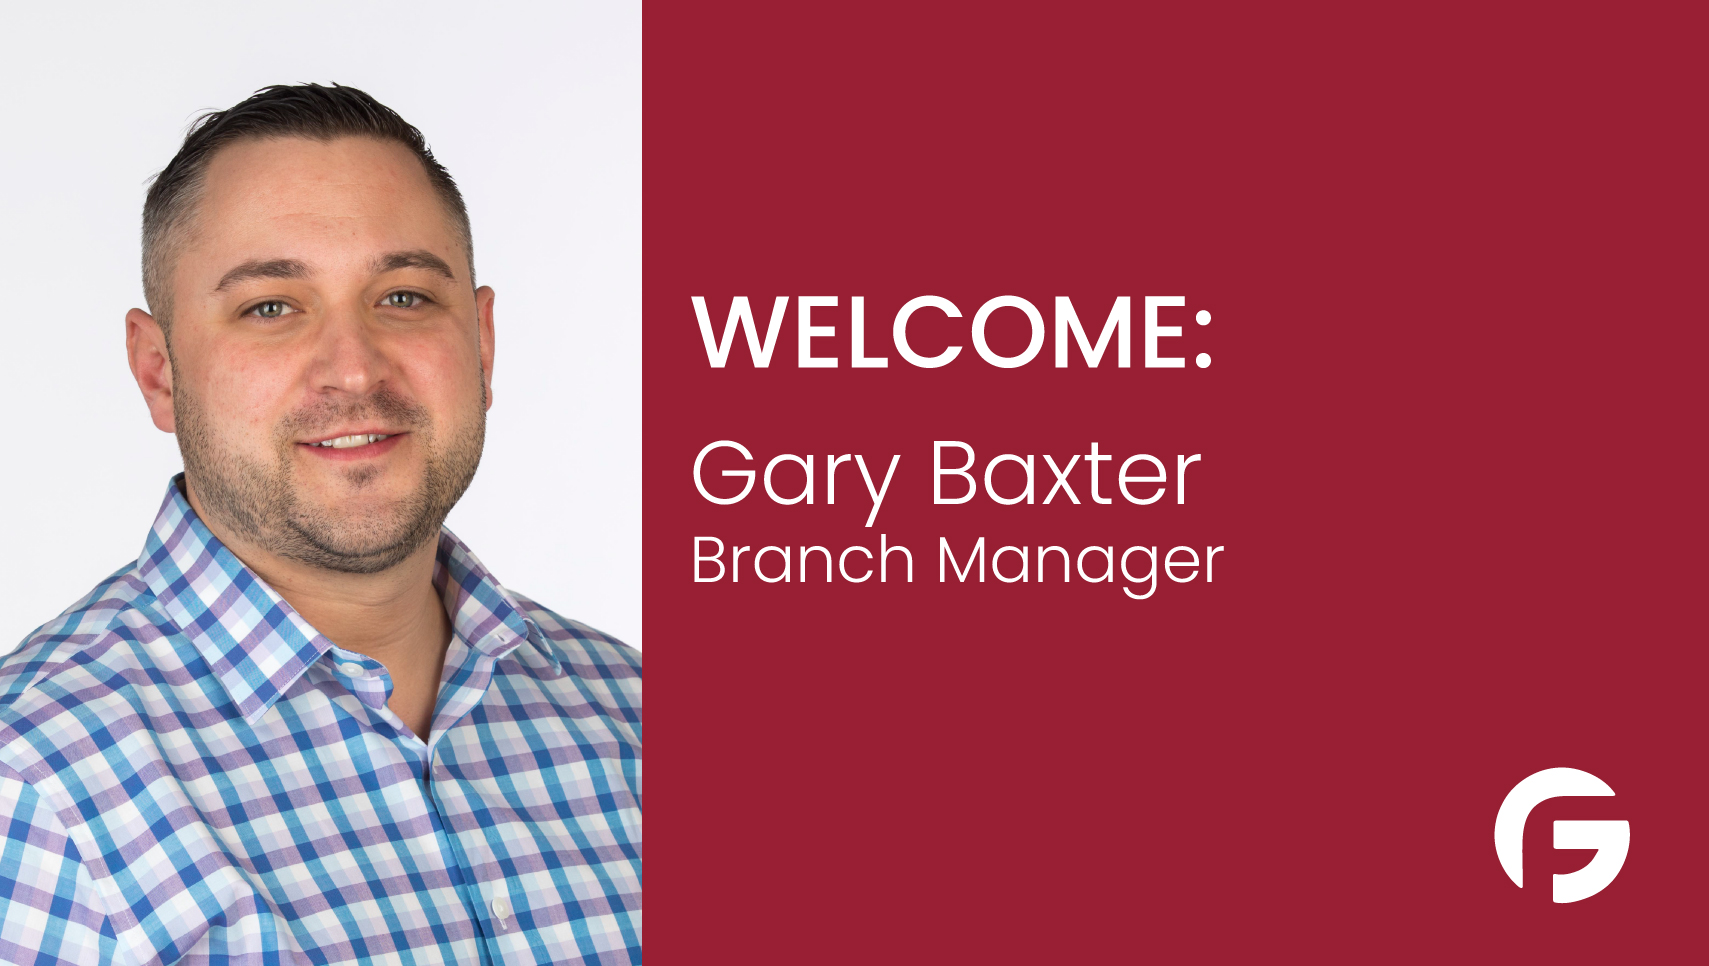 Gary Baxter Branch Manager serving Arizona